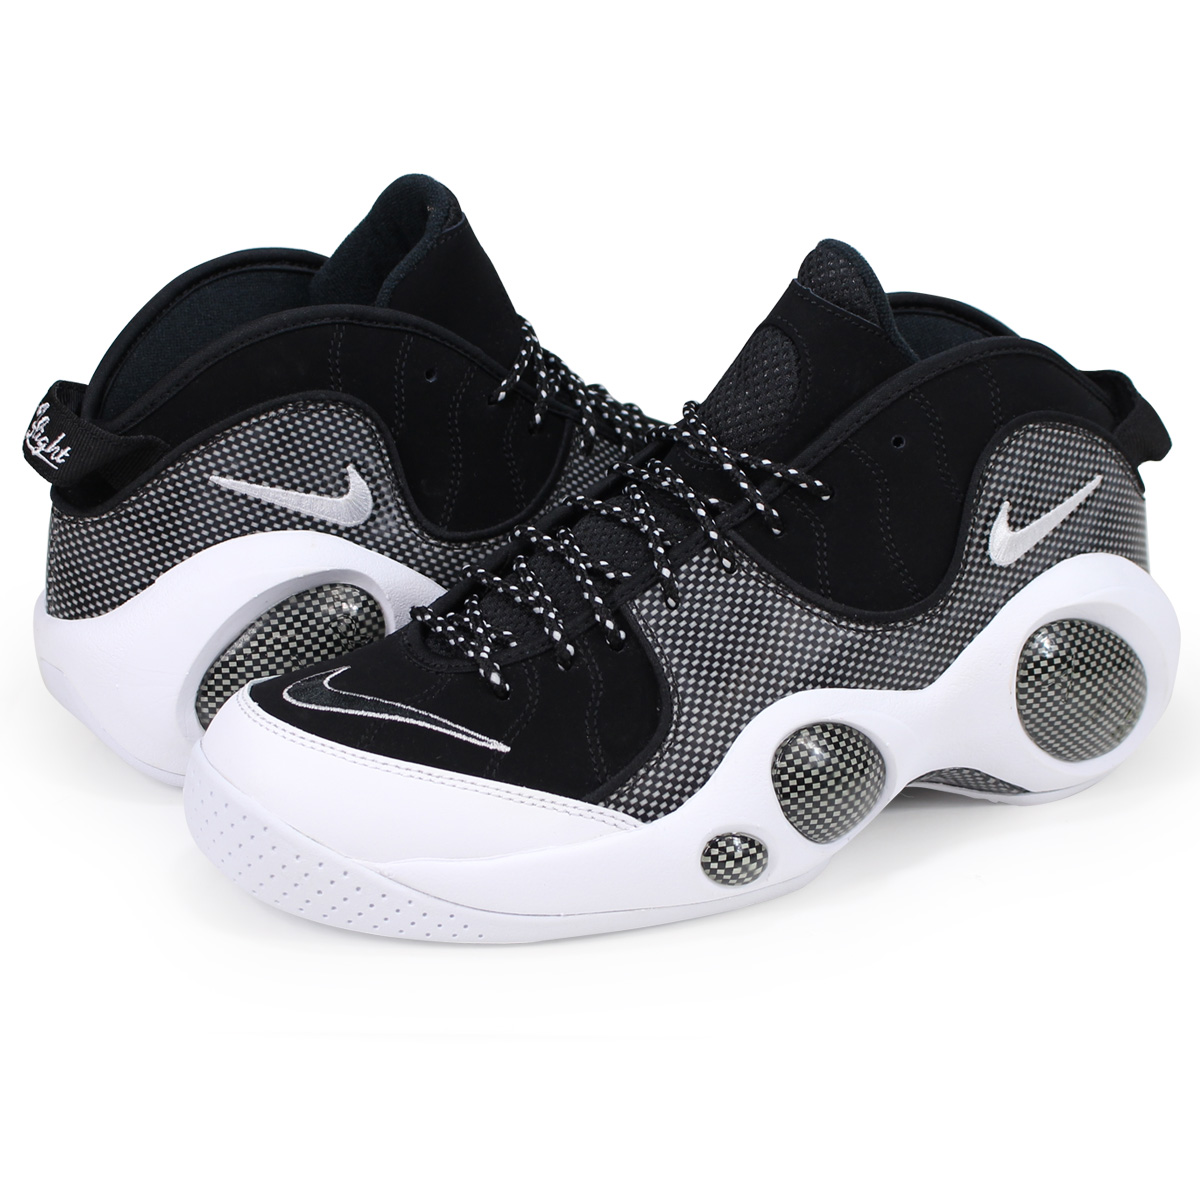 Whats up Sports  NIKE ZOOM FLIGHT 95 SE Nike zoom flight 95 sneakers ... f381a114a